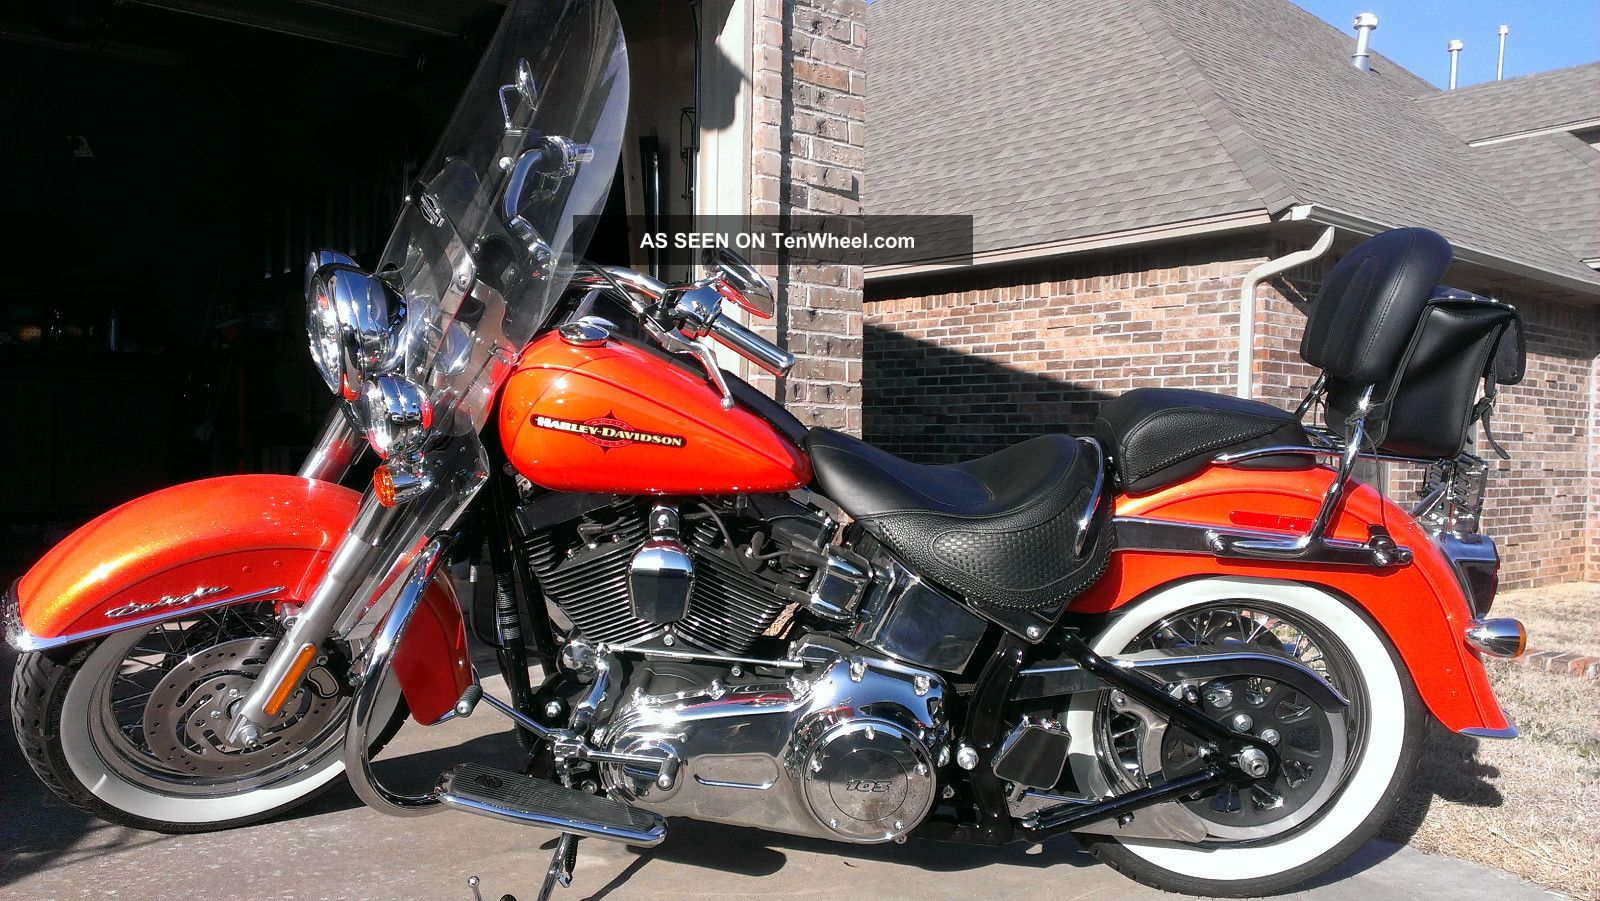 Snowmobiles Harley Davidson Motorcycles Atvs For Sale